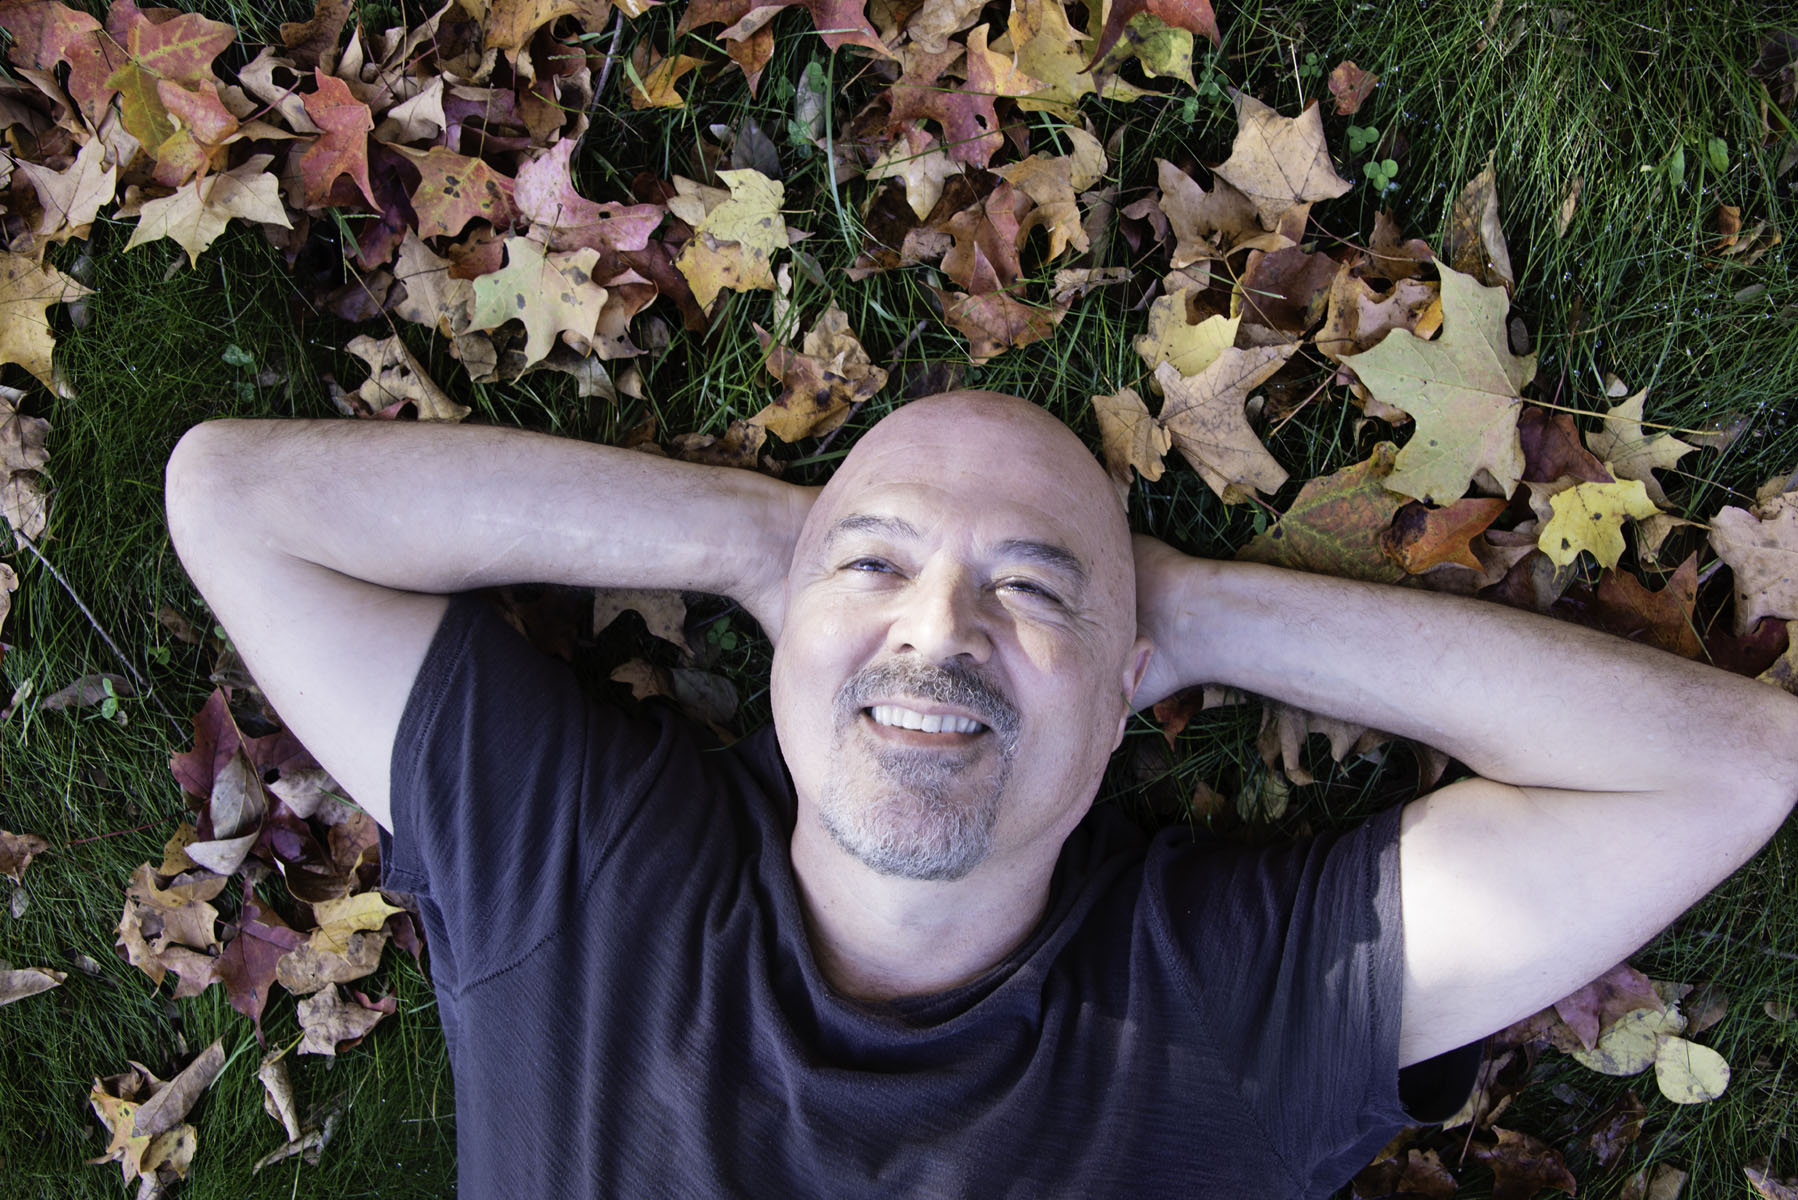 Man Laying in Leaves